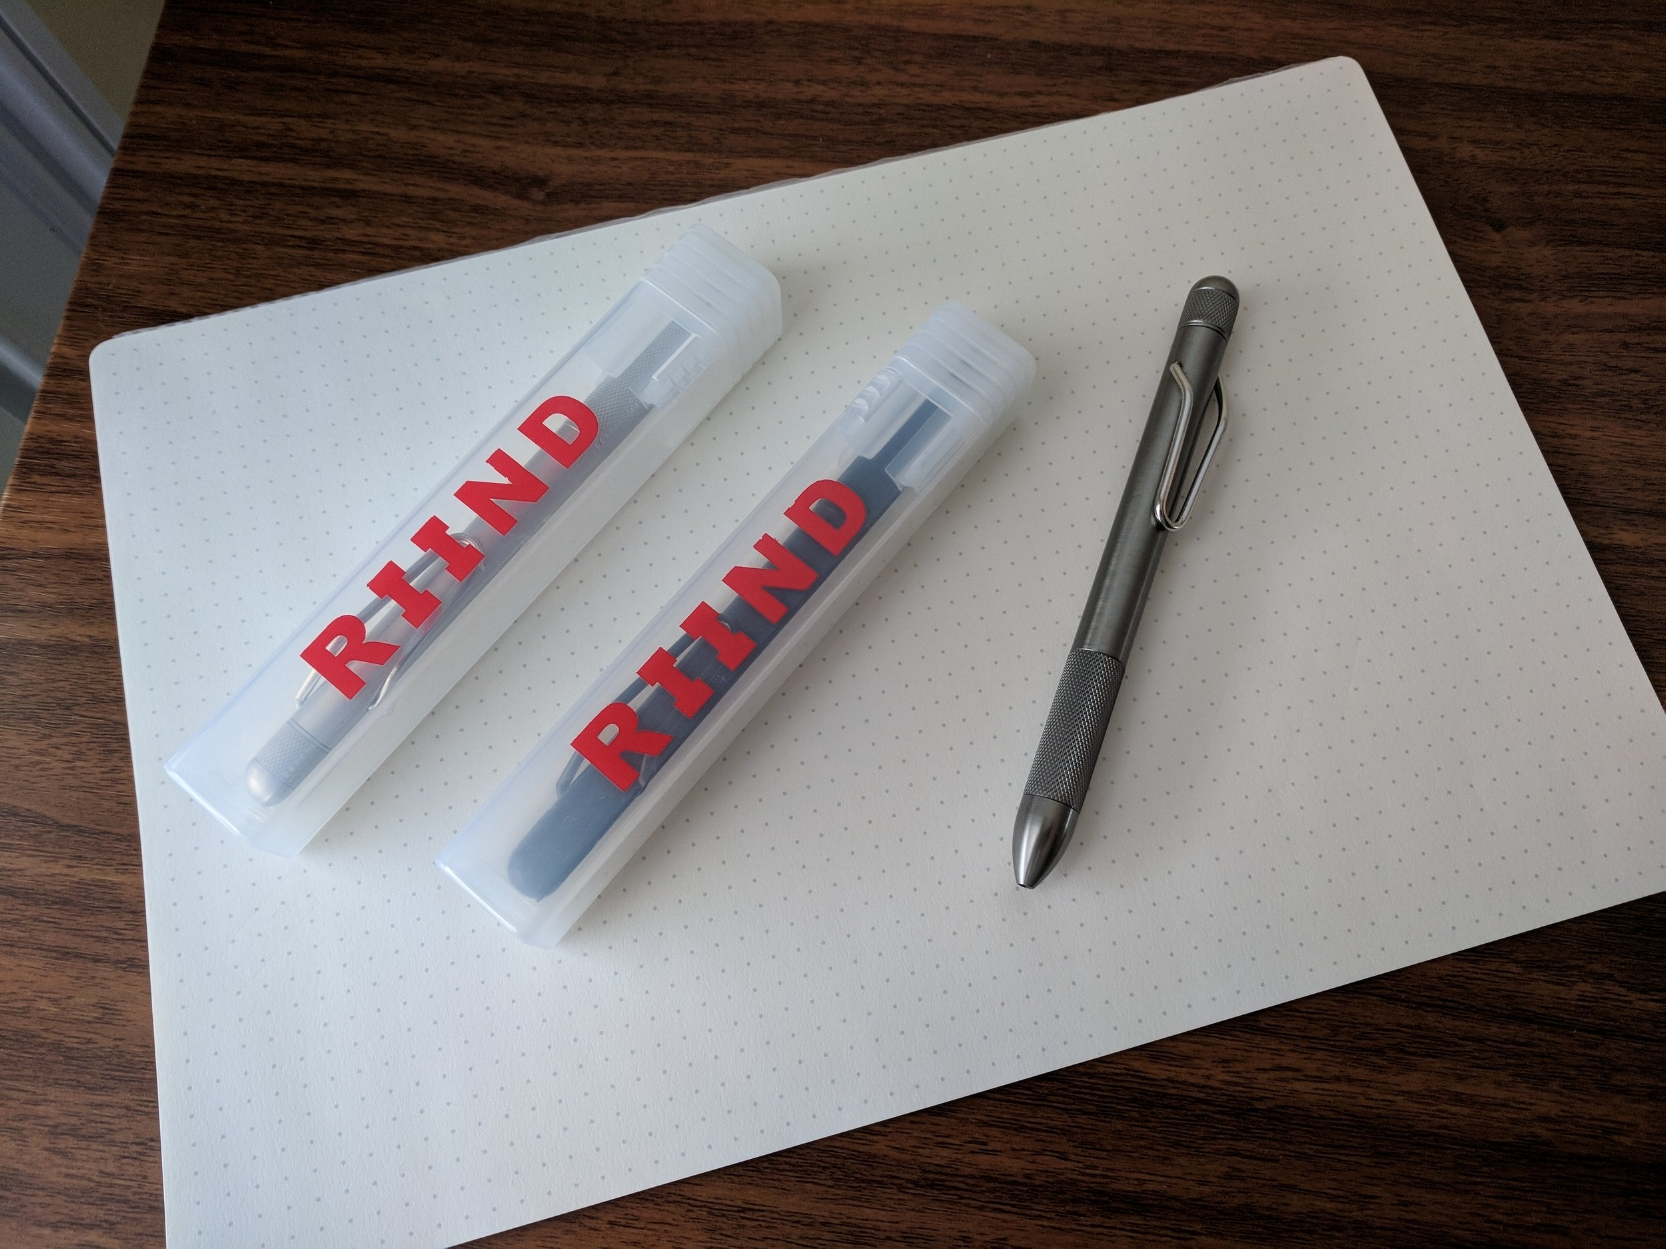 The RIIND packaging is minimal AND reusable. I love these pen tubes, which come in handy for storing and protecting pens should you need to ship them.